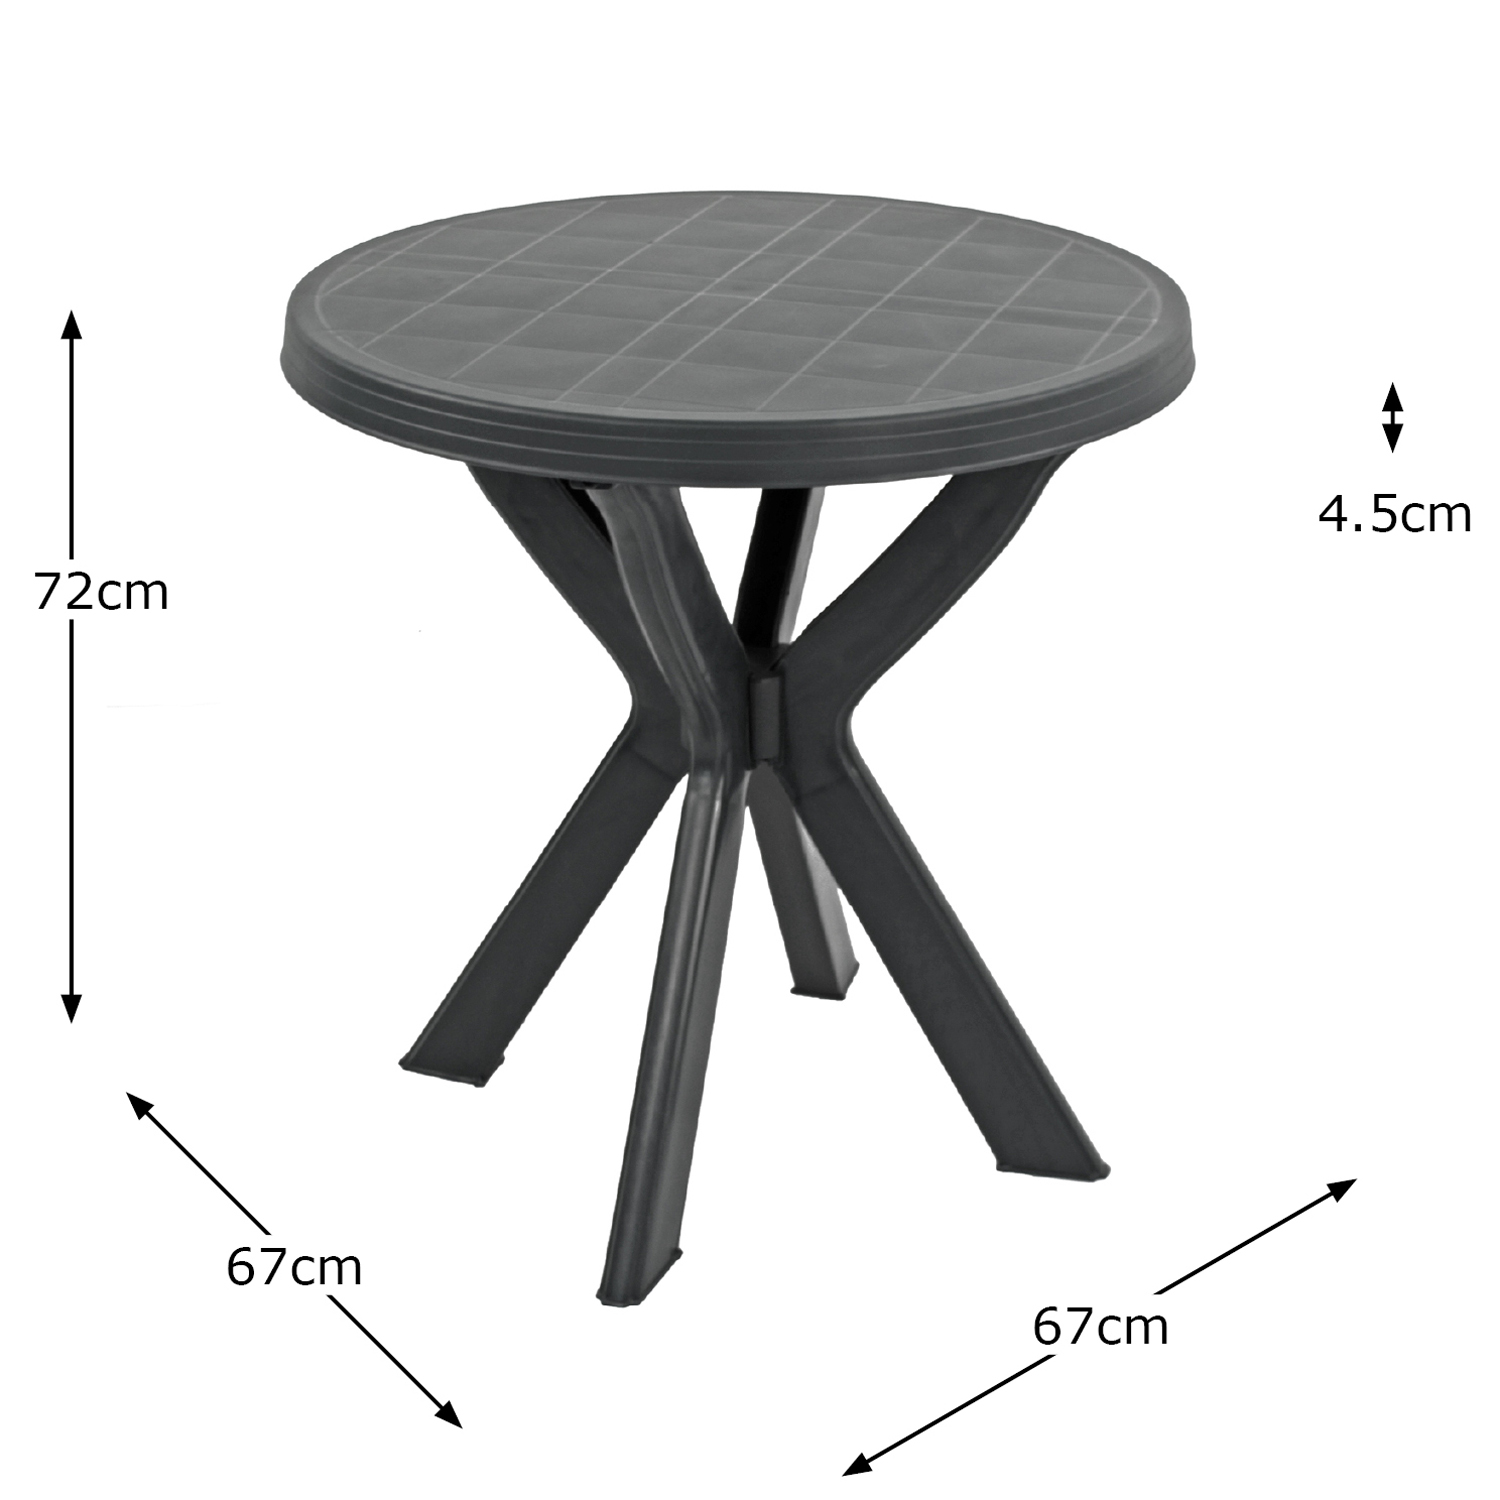 TIVOLI BISTRO TABLE ANTHRACITE DIMENSION MS1